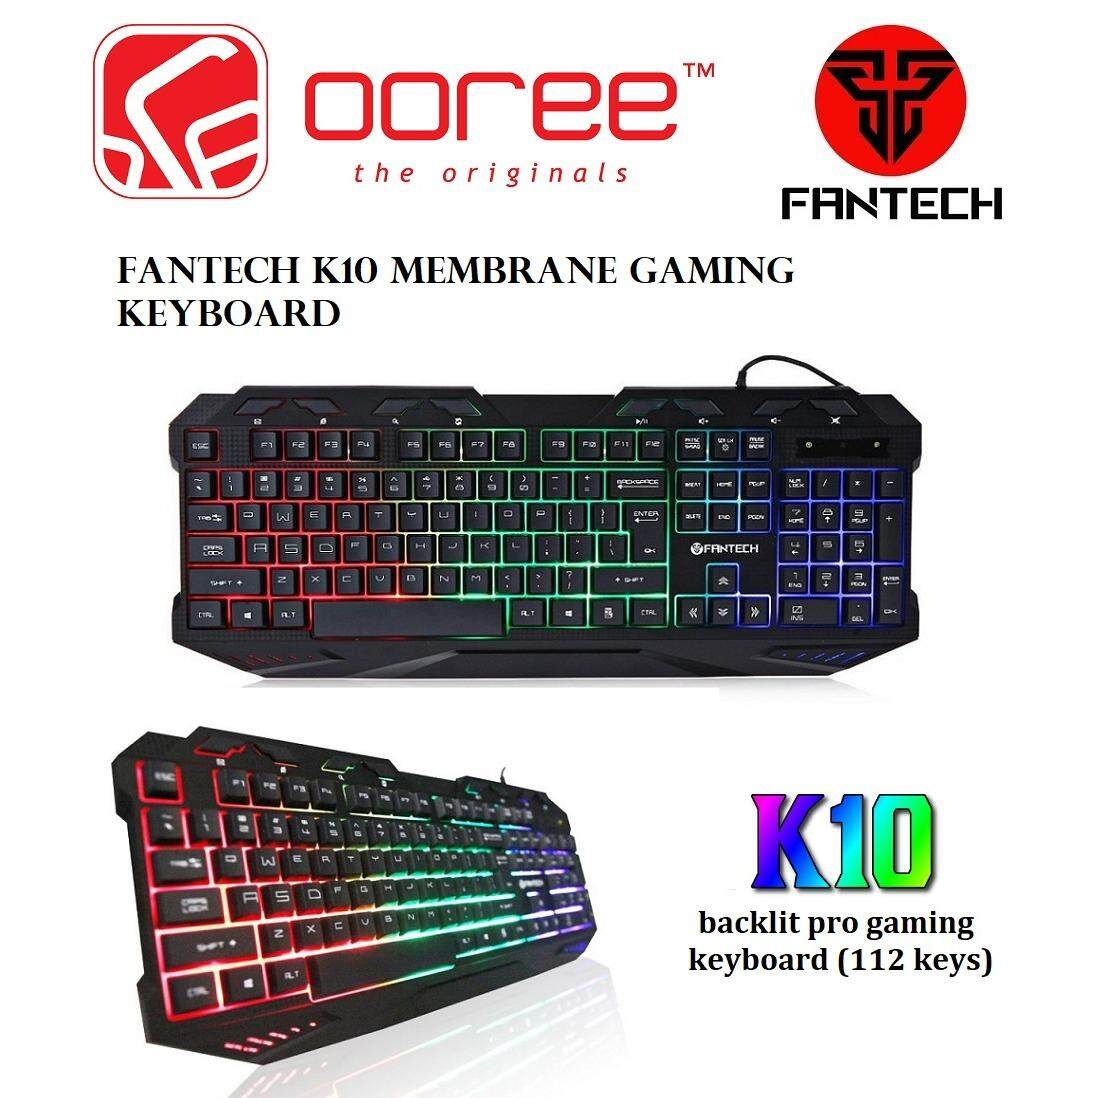 GENUINE FANTECH K10 BACKLIT PRO MEMBRANE GAMING KEYBOARD (120 KEYS) Malaysia